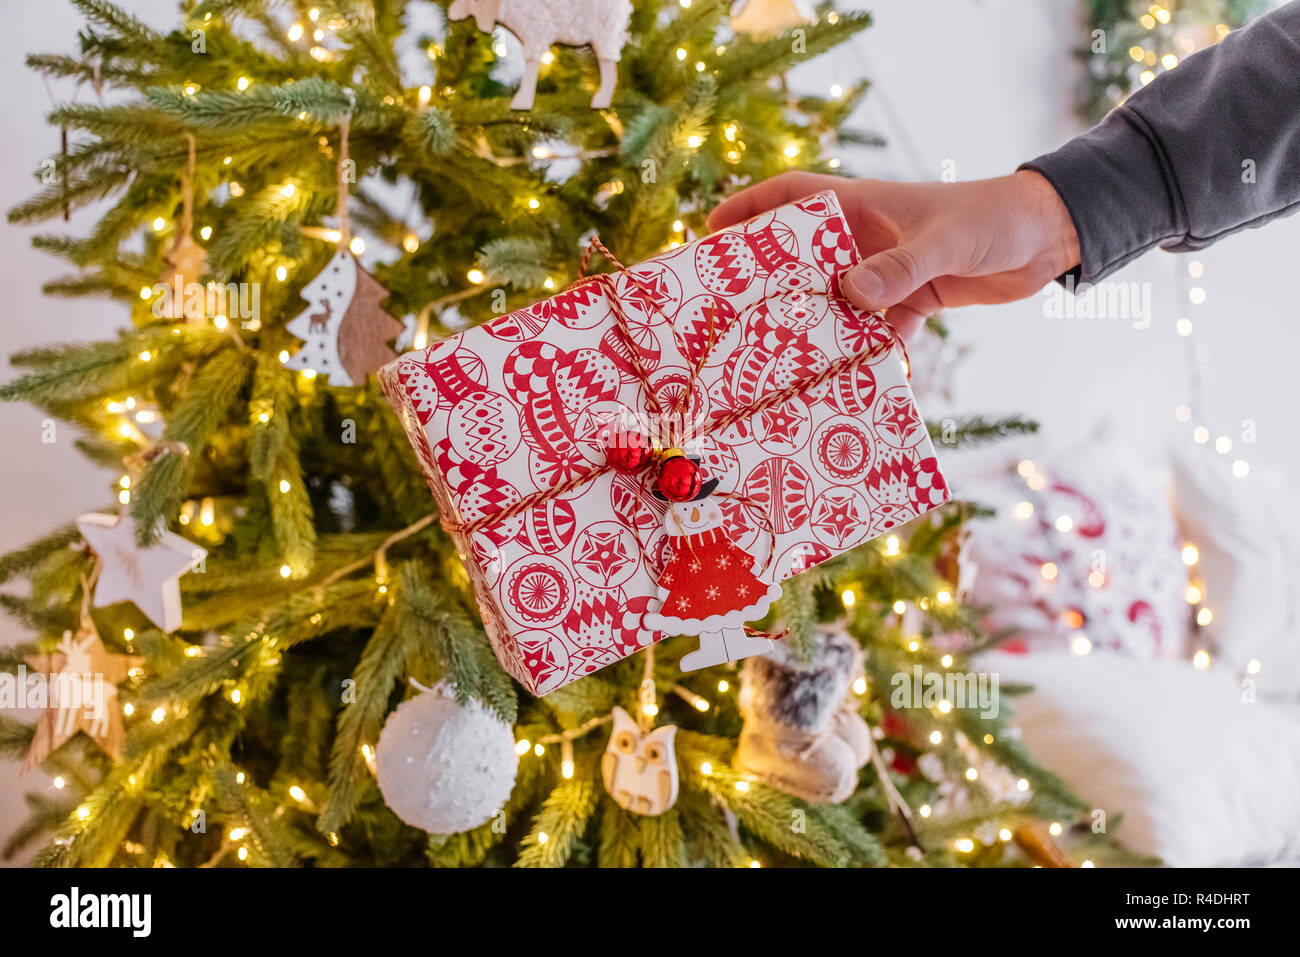 a man's hand holds out a gift under the tree . cozy Christmas decor garland bokeh. new year 2019. - Stock Image